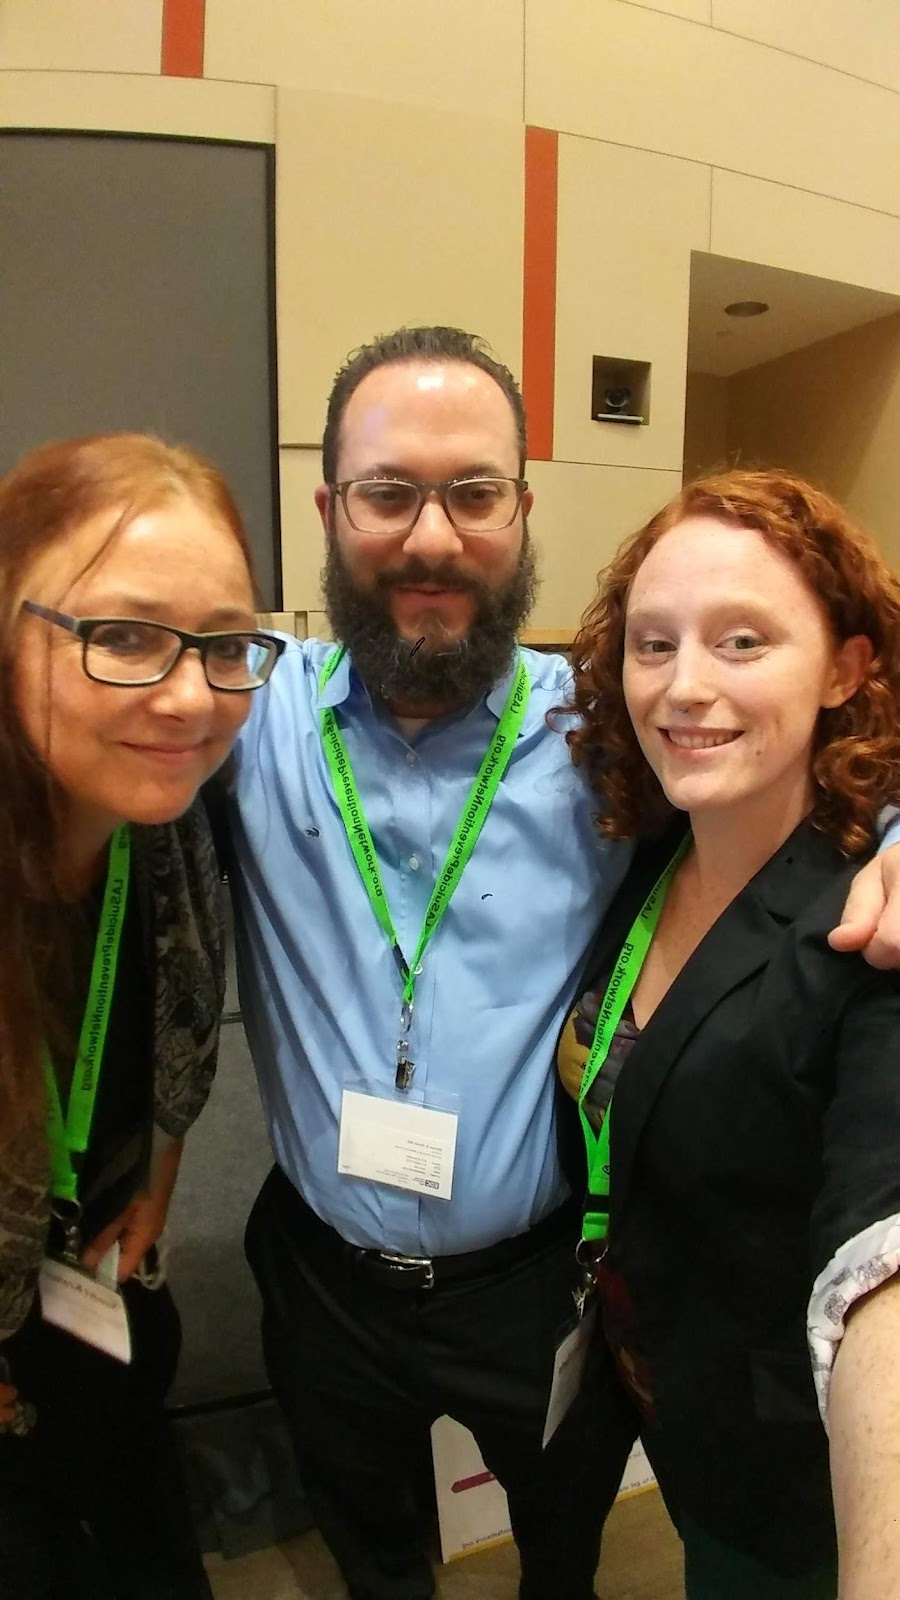 (left to right) Sandri Kramer and Shawn Silverstein, after presenting their breakout session on Suicide Risk Assessment and Safety Planning, along with 211's community relations assistant, Hope Algeo.